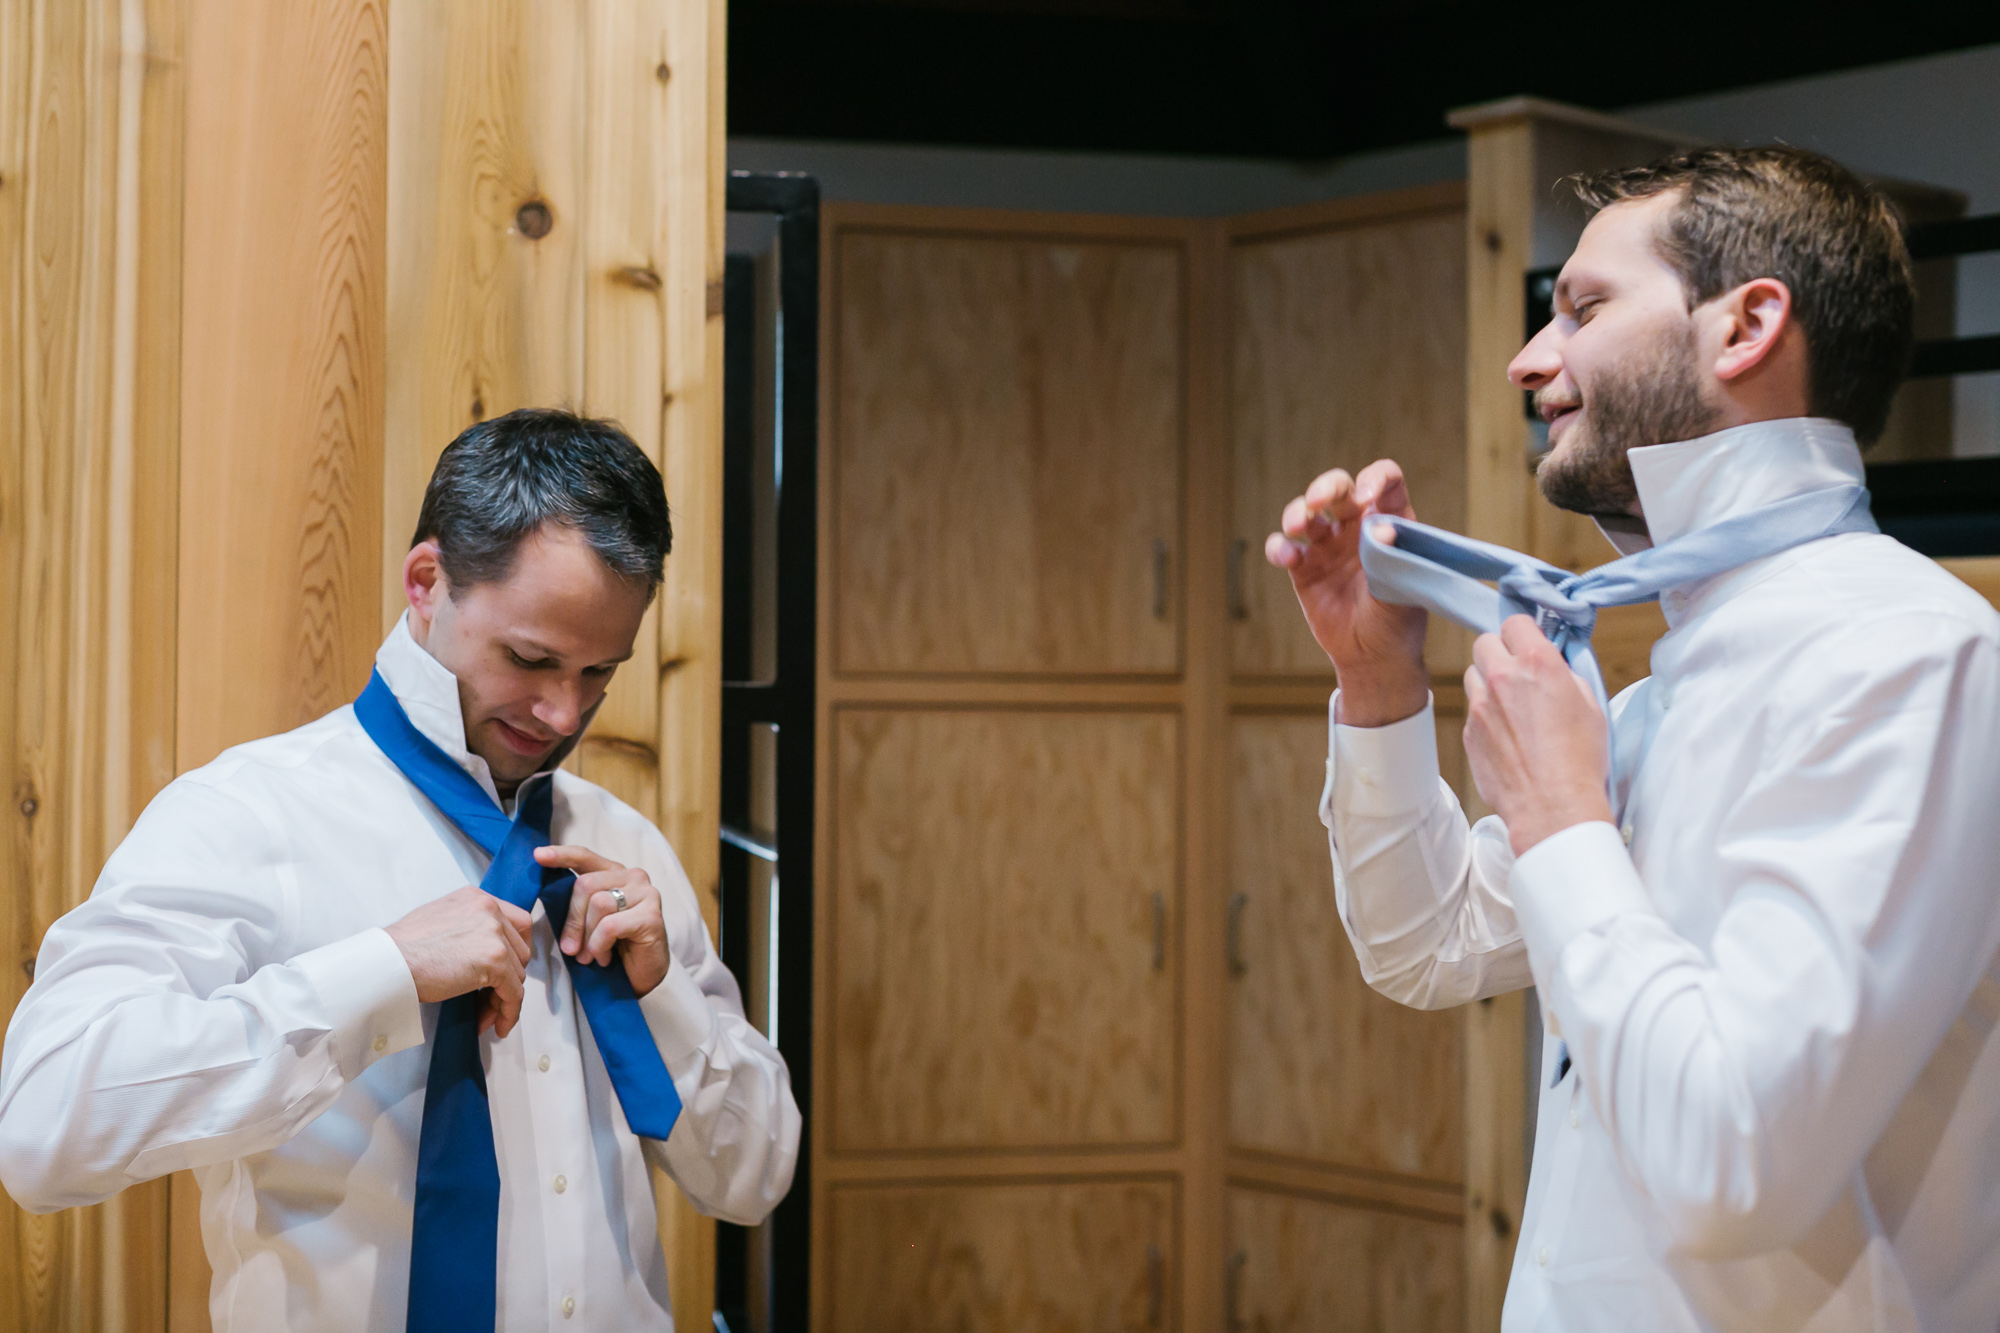 Groom and his brother get dressed, tying ties together in wood cabin